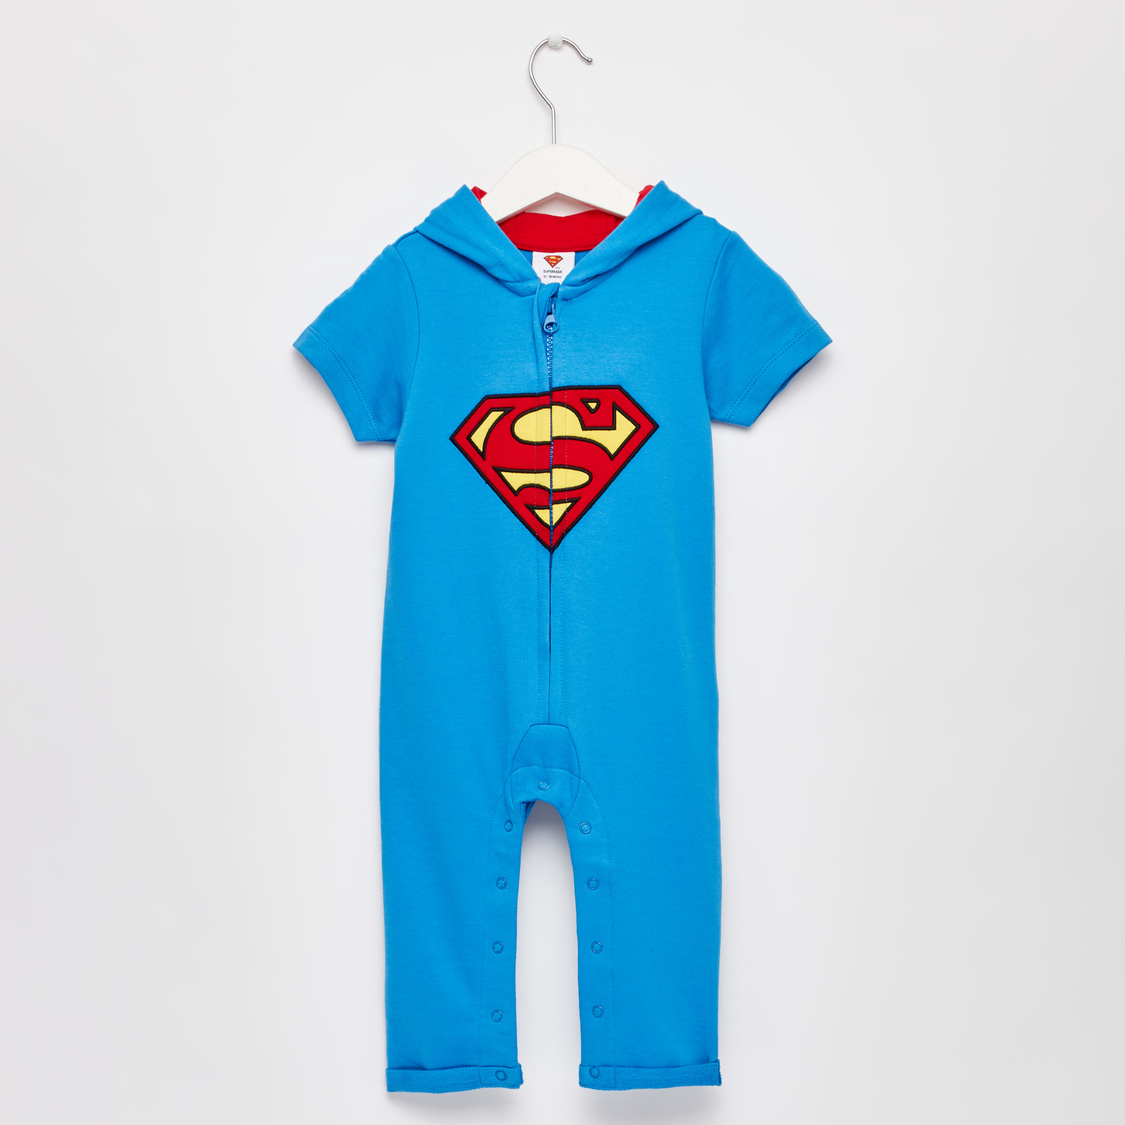 Superman Print Hooded Romper with Short Sleeves